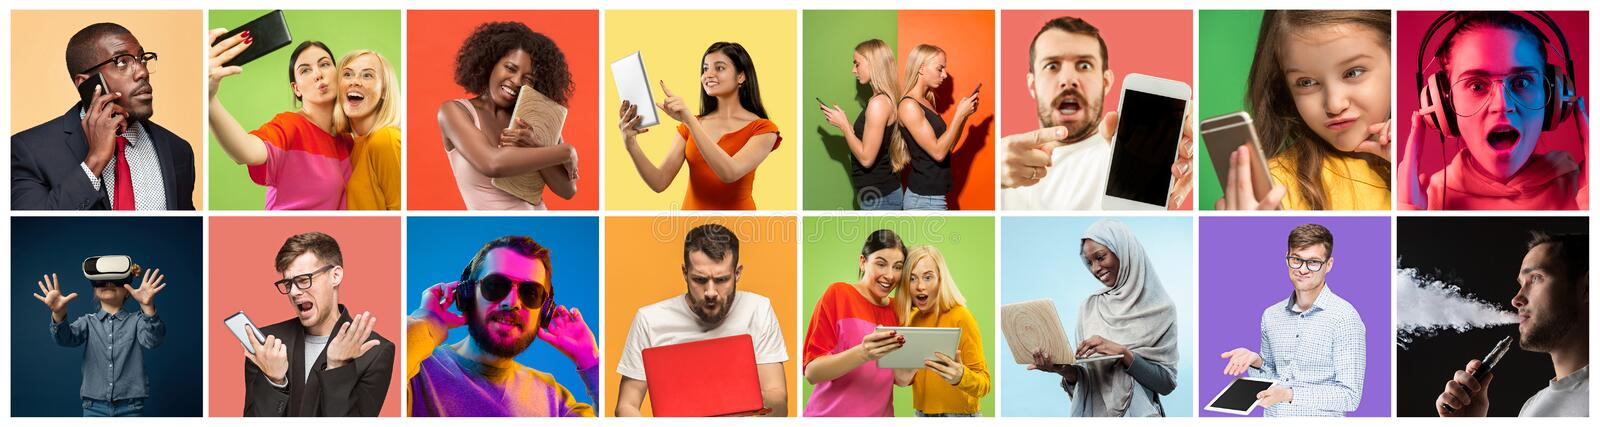 Portrait of people using different gadgets on multicolor background royalty free stock image